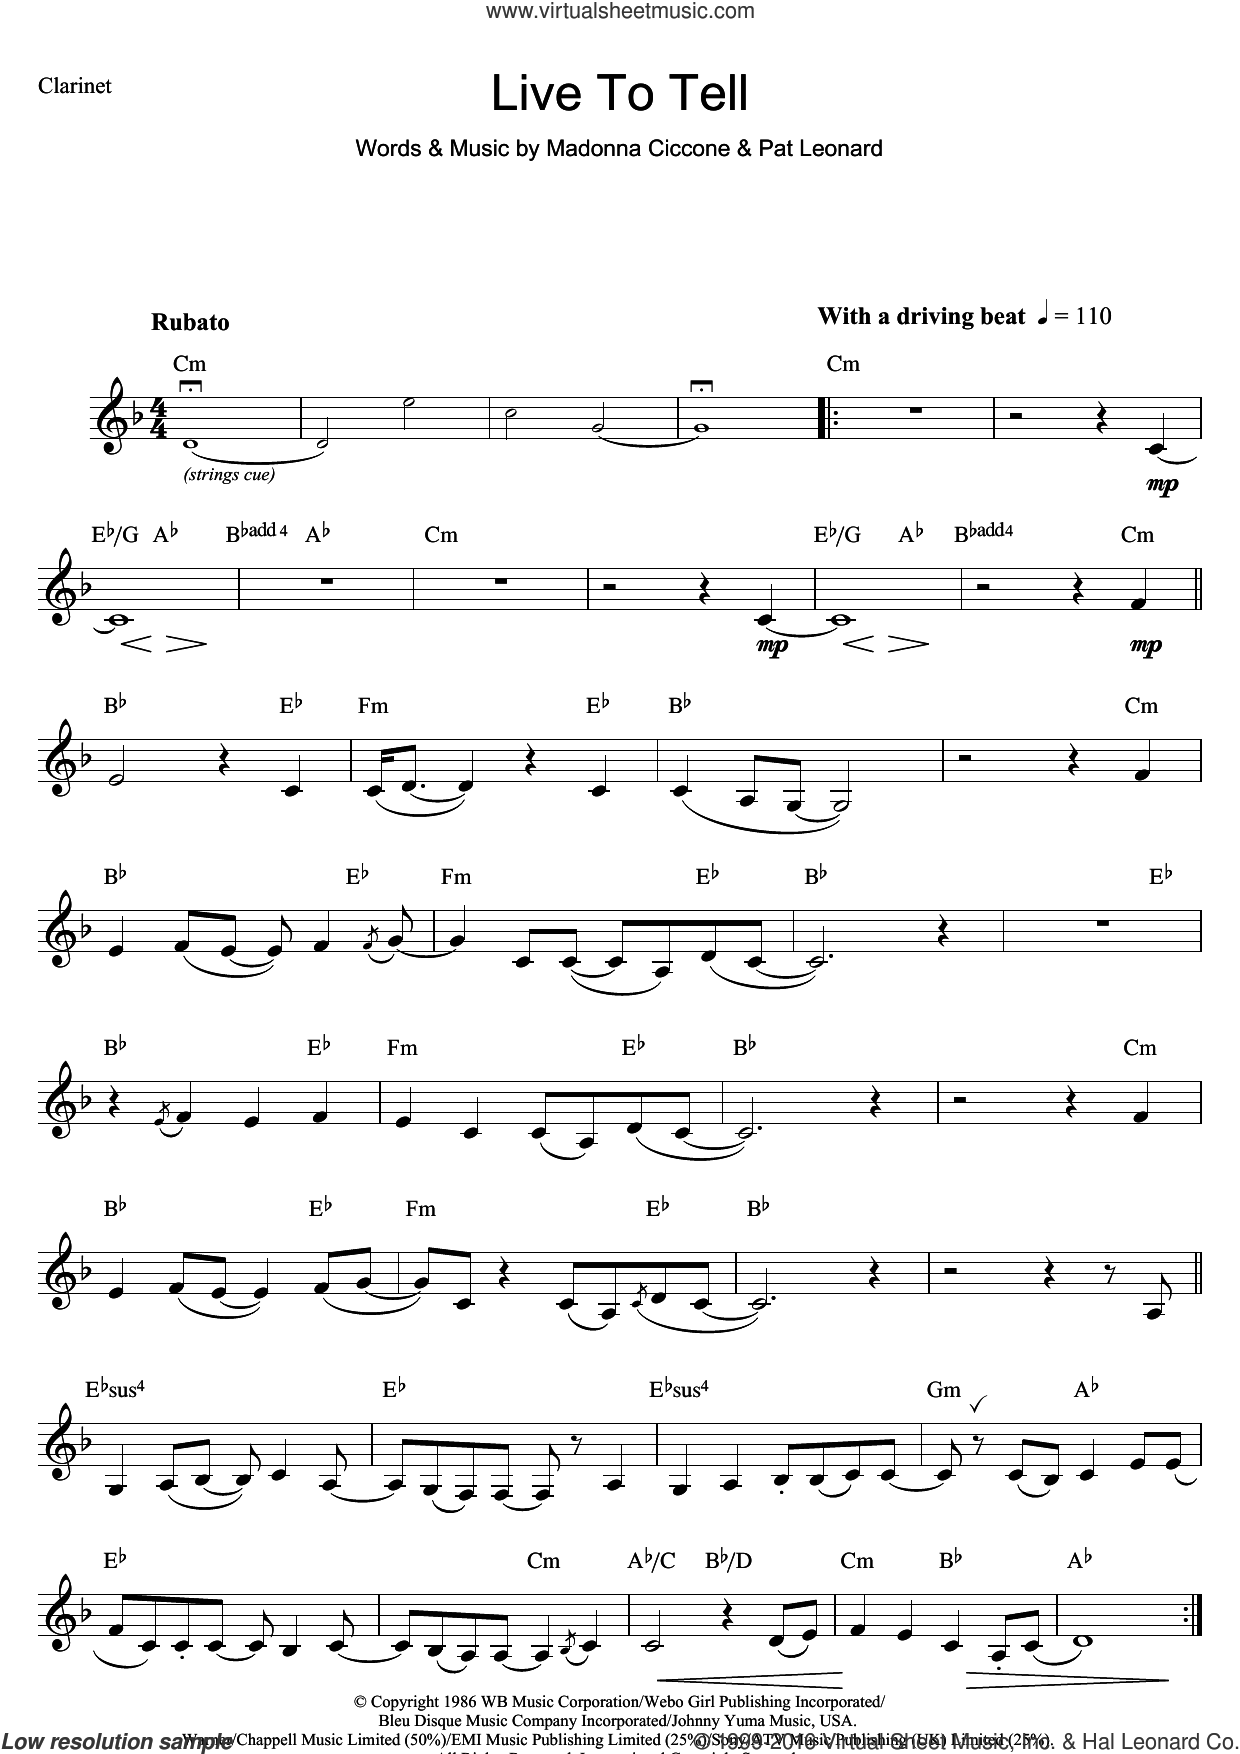 Live To Tell sheet music for clarinet solo by Madonna and Patrick Leonard, intermediate skill level